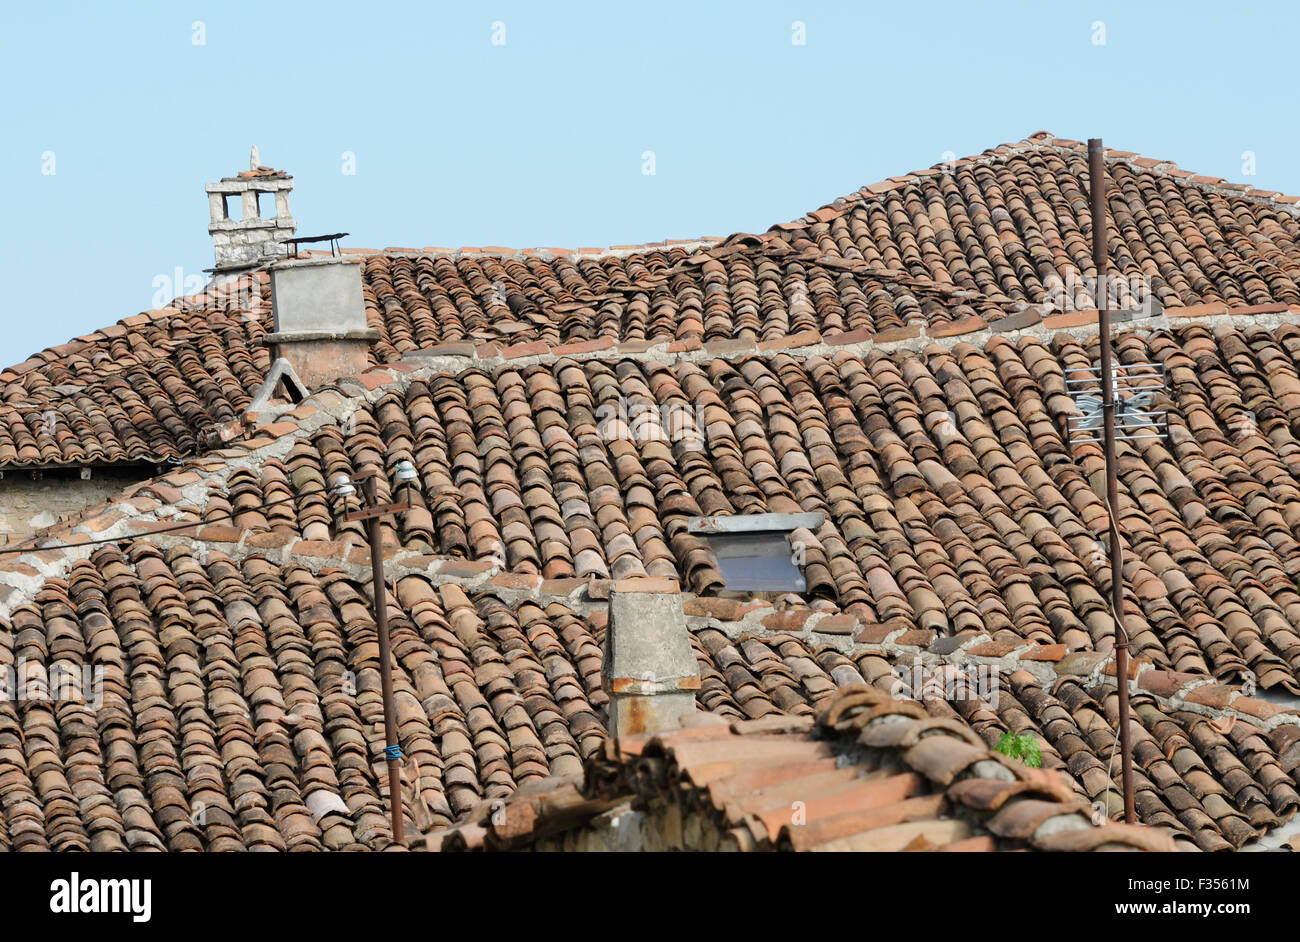 Tiled roofs of houses within the walls  of Berat Castle. Berat Castle is a world heritage site. Berat, Albania. - Stock Image